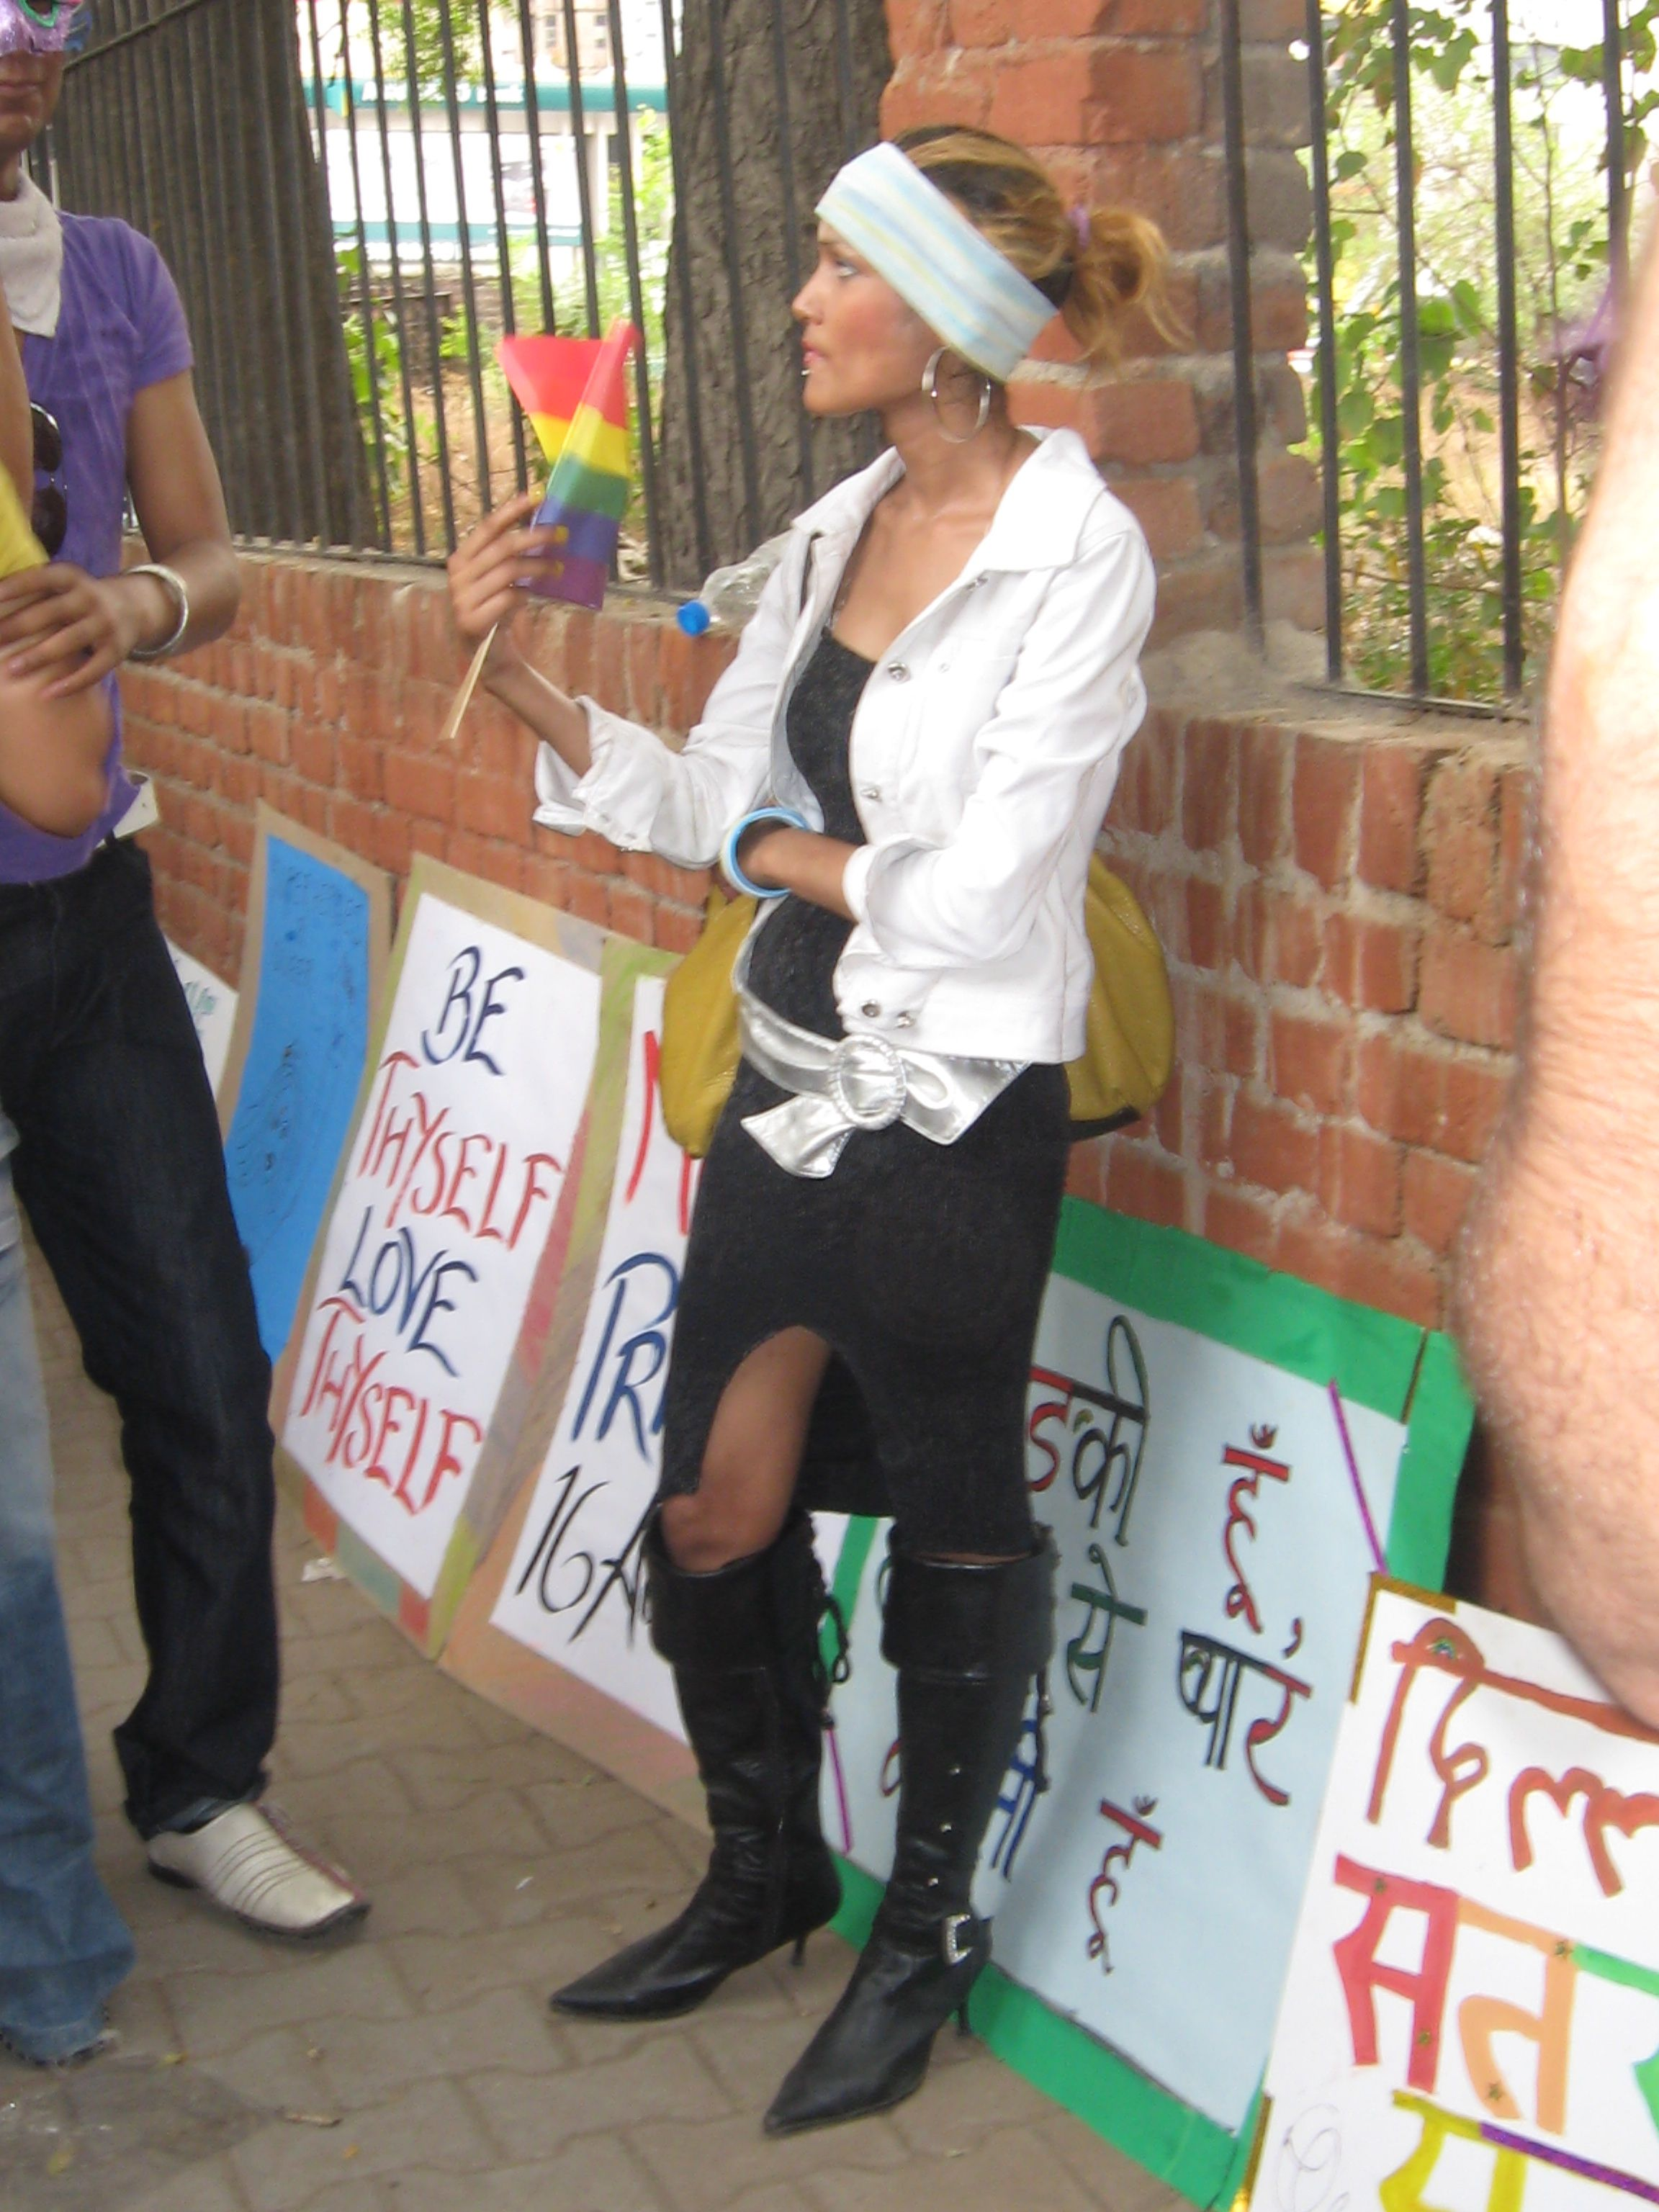 Delhi Gay Pride 2009 – afterparty | Groovy Ganges